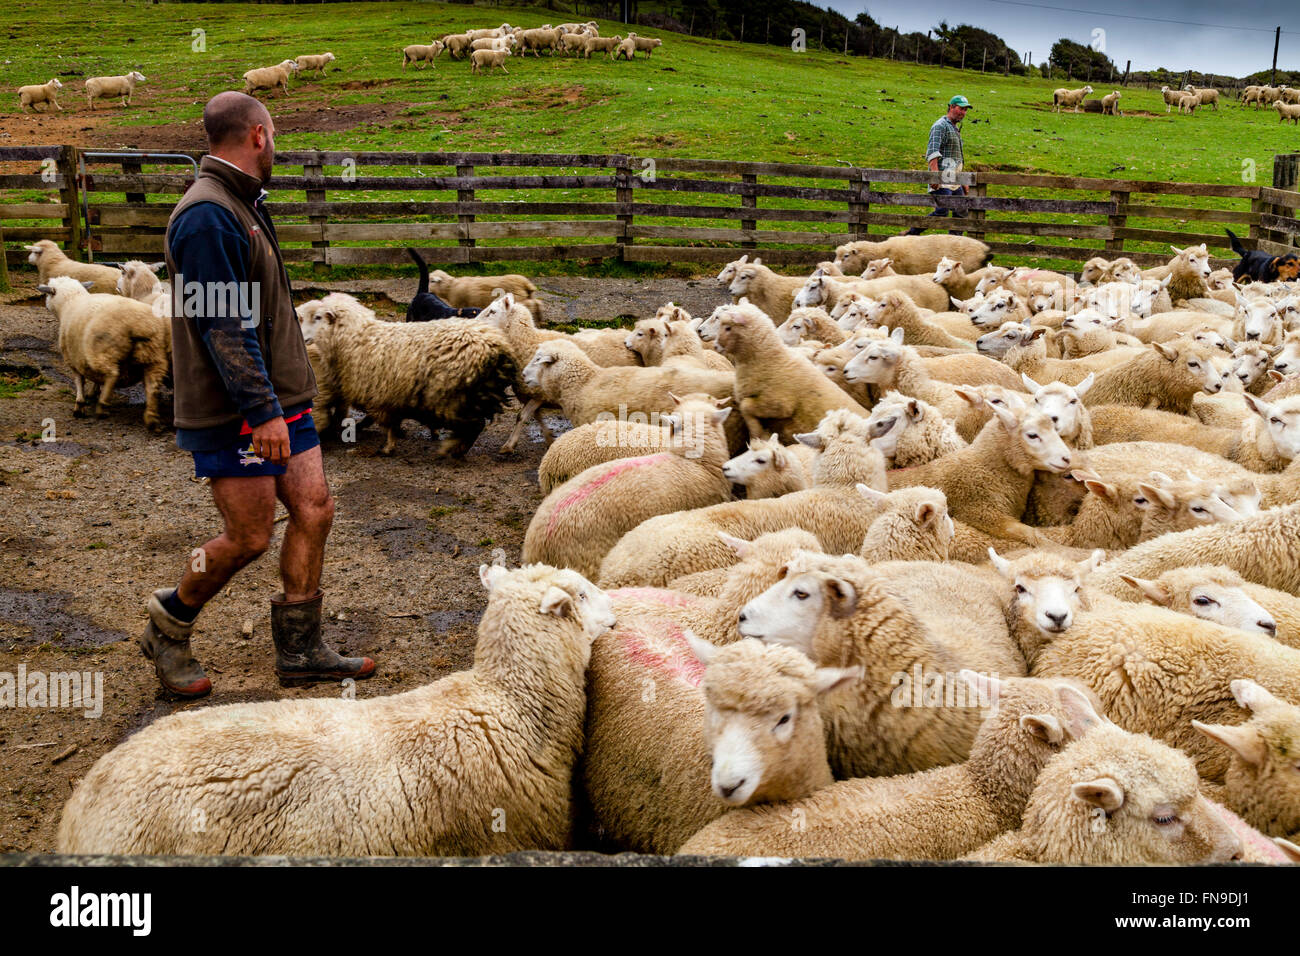 Sheep In A Pen Waiting To Be Counted and Weighed, Sheep Farm, Pukekohe, North Island, New Zealand Stock Photo